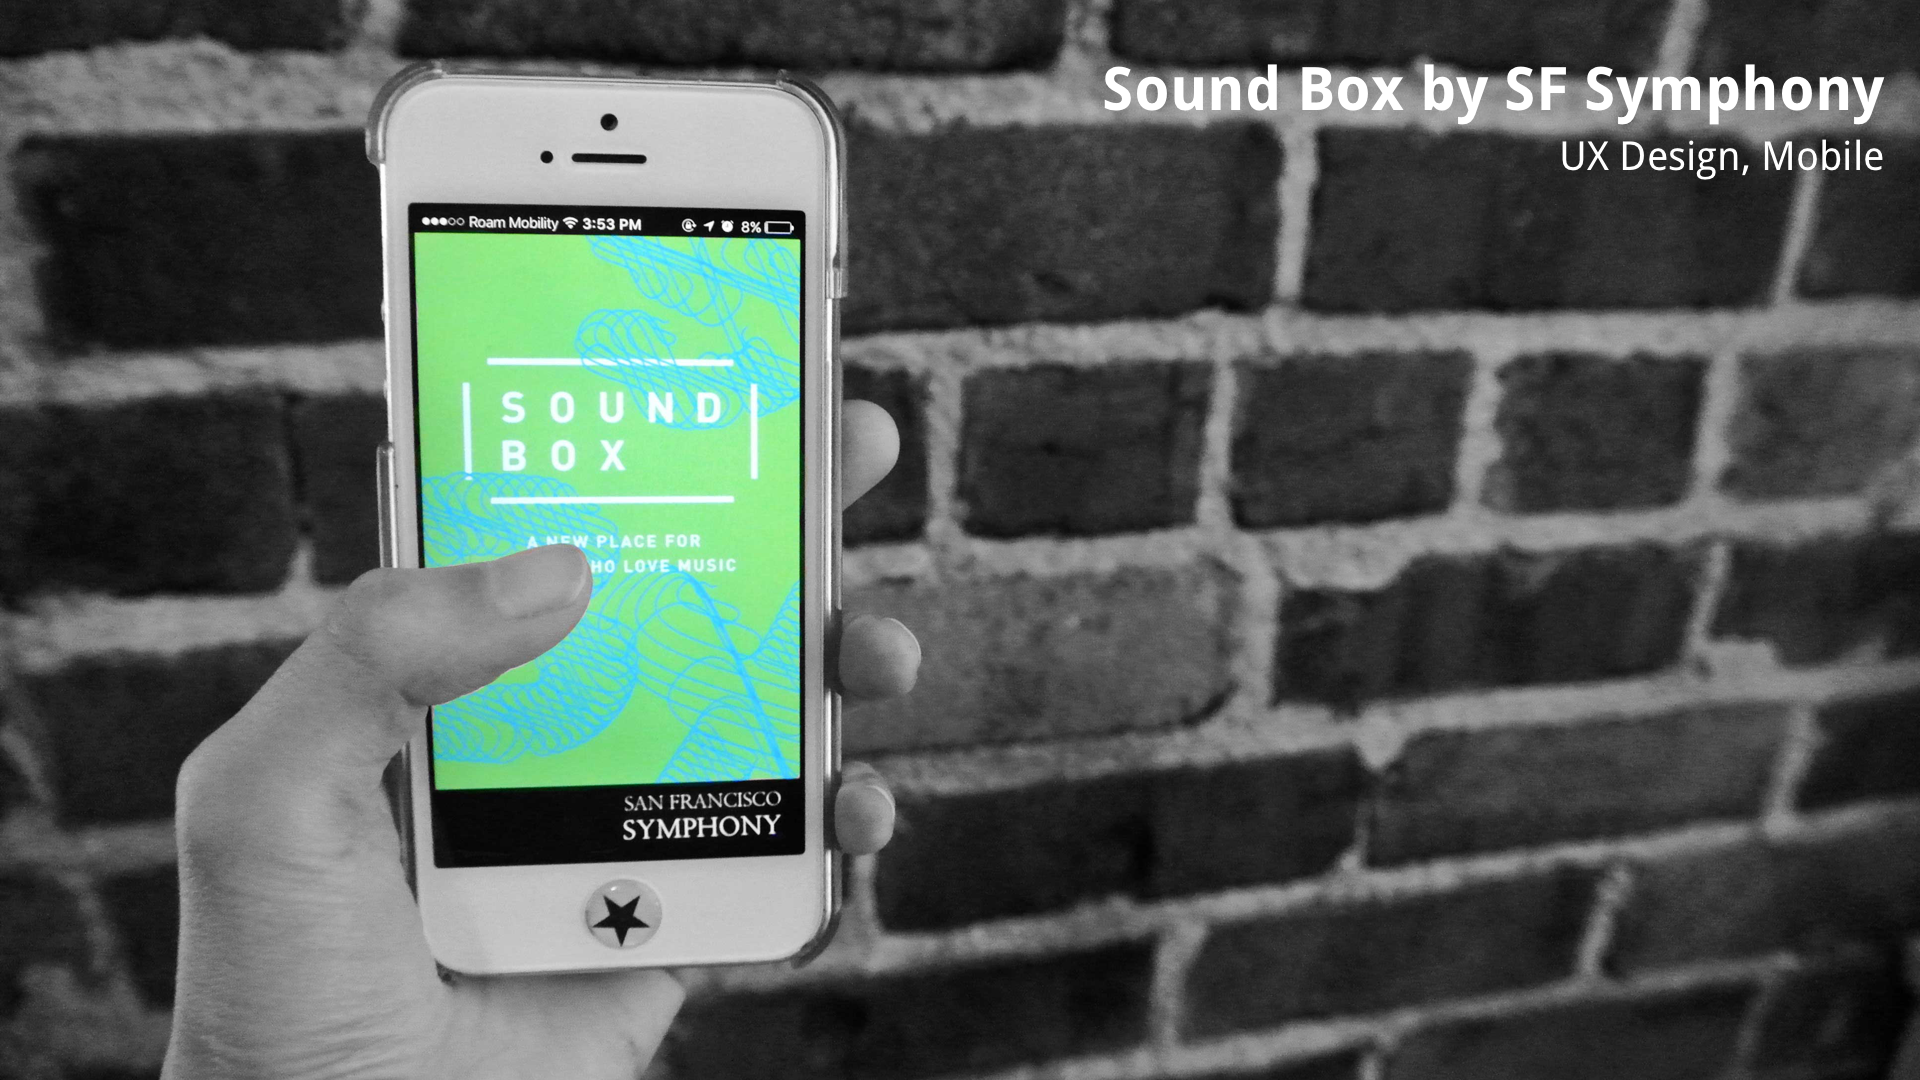 Sound Box by San Francisco Symphony